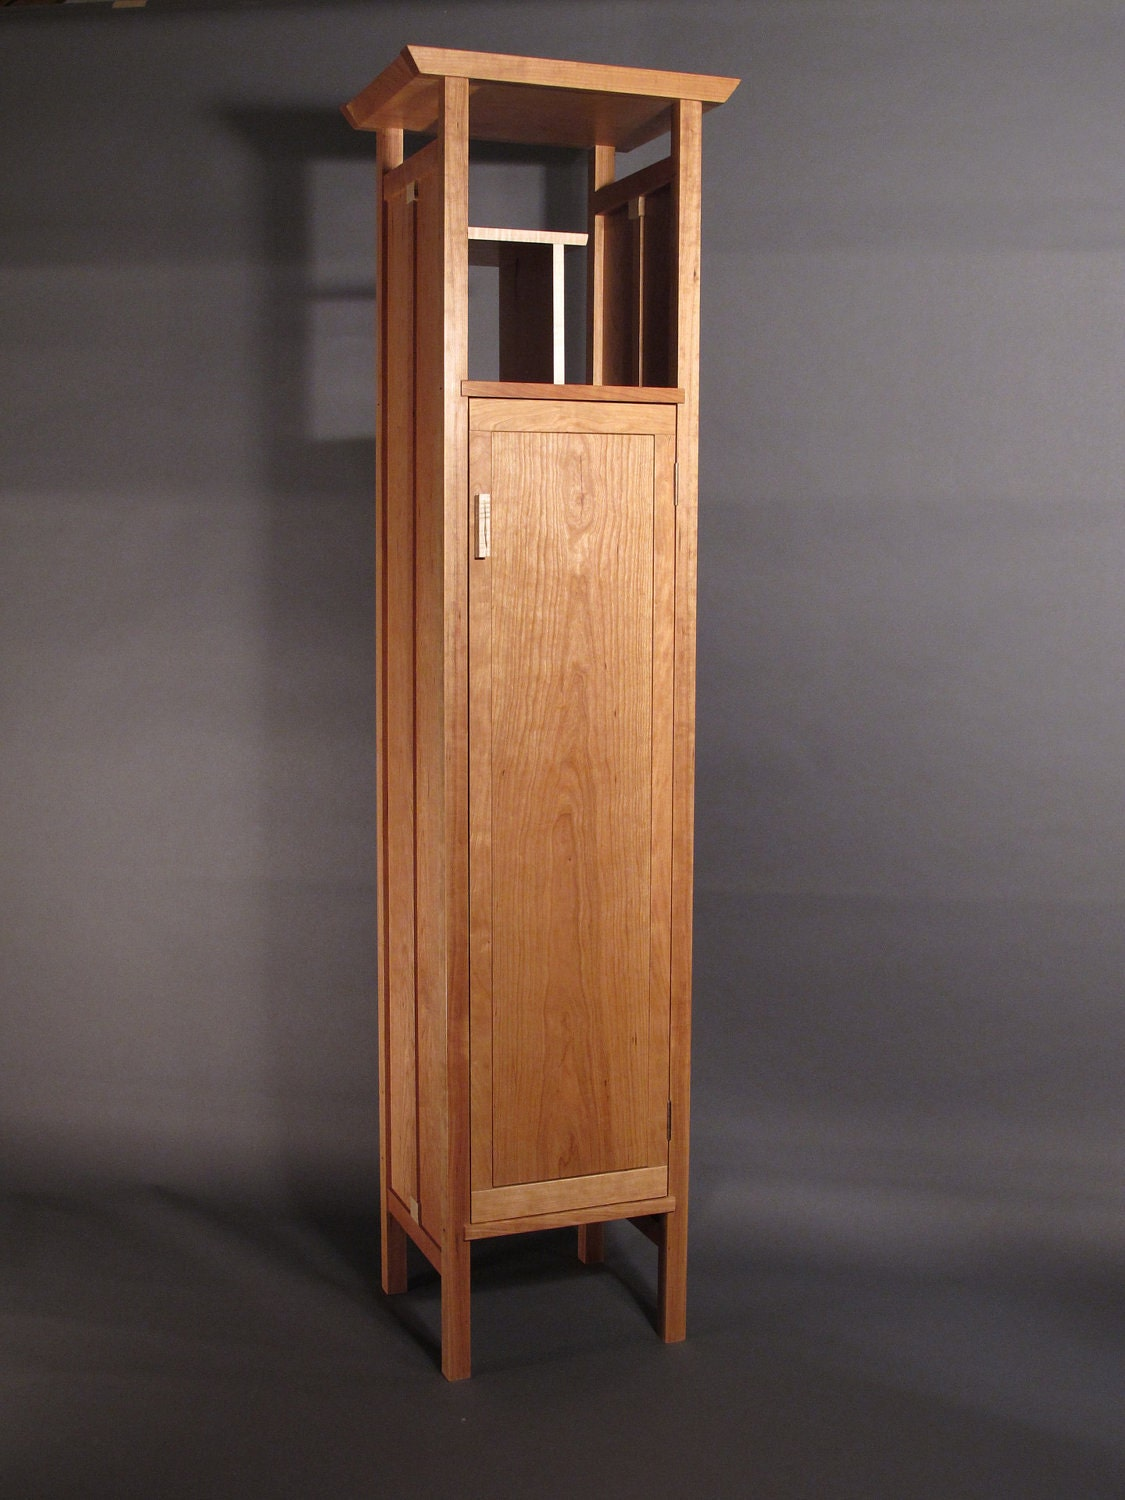 Kitchen armoire pantry - Tall Narrow Armoire Cabinet In Cherry By Mokuzaifurniture On Etsy